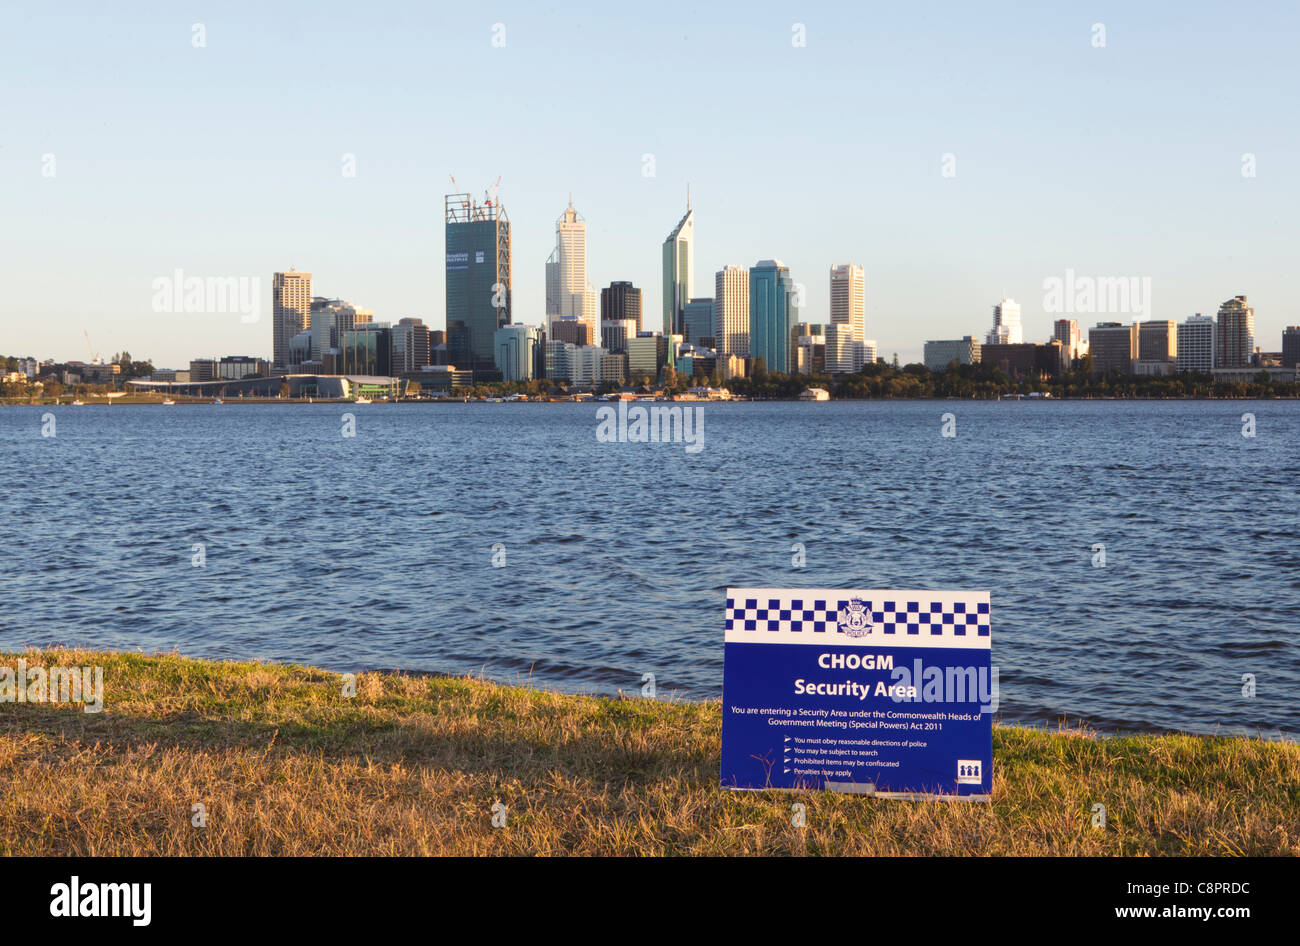 CHOGM Security Area Police sign - Stock Image